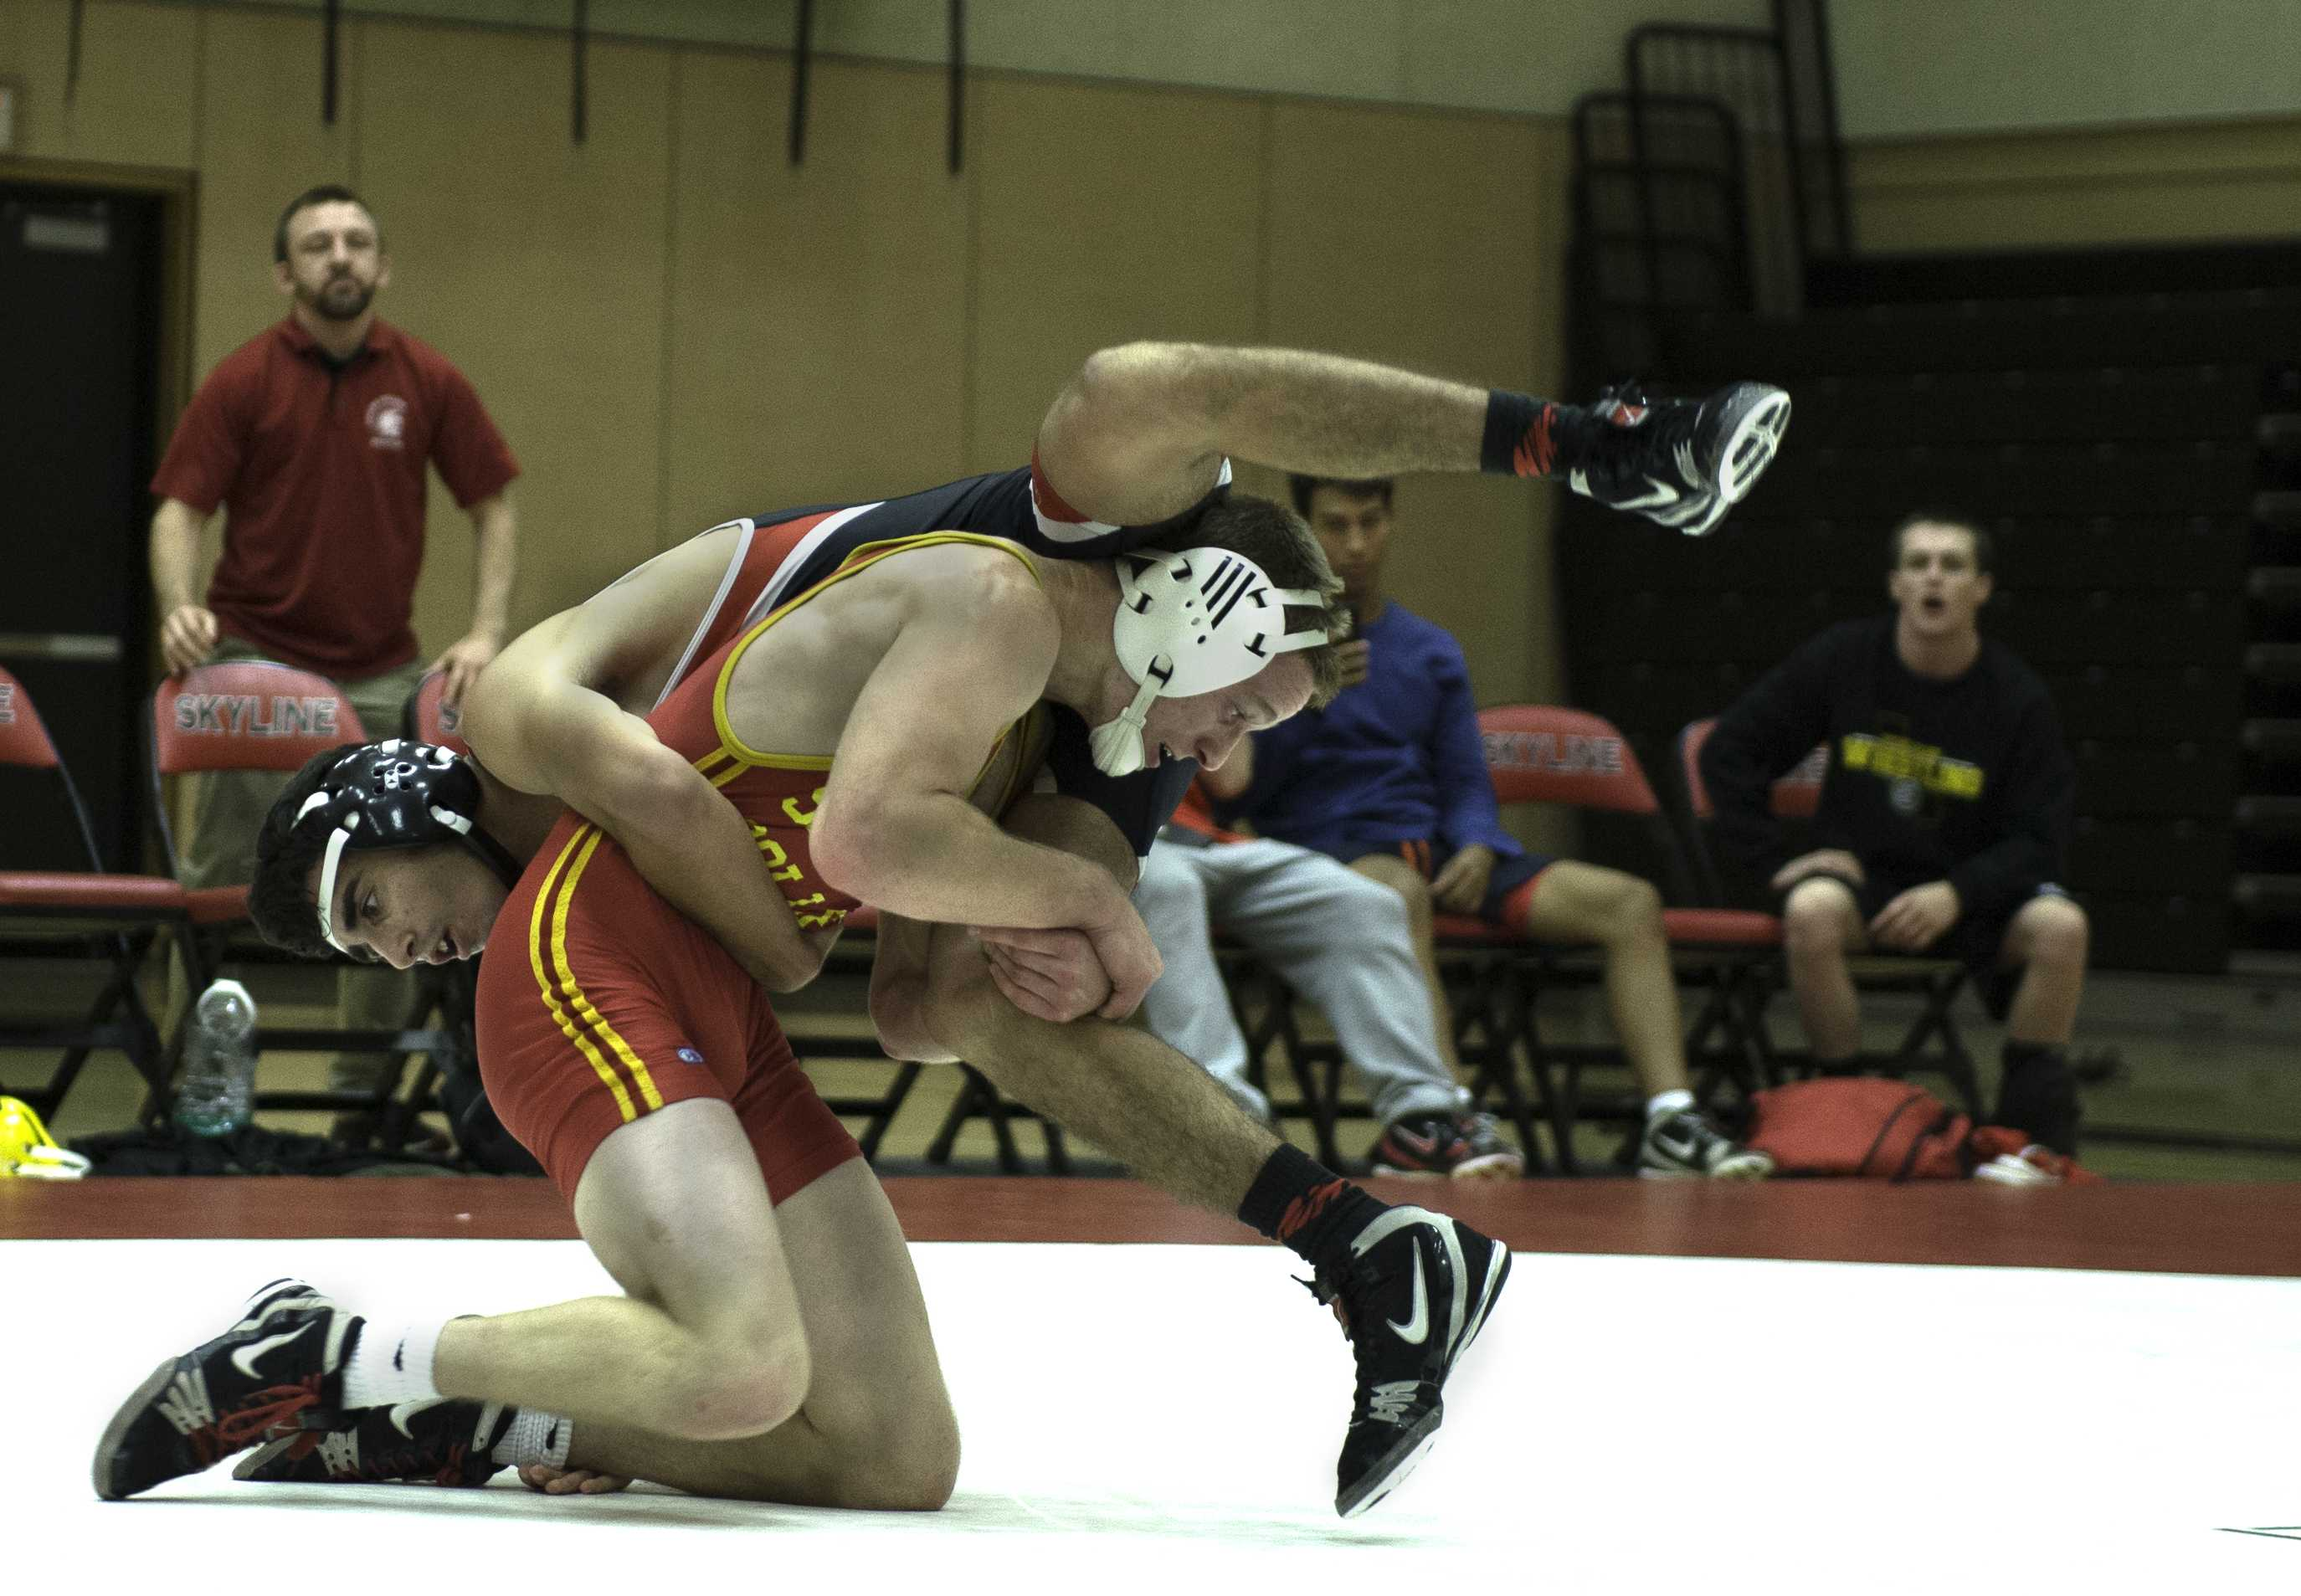 Anthony Andgrighetto elevates a single leg late in the third period against Fresno City College.